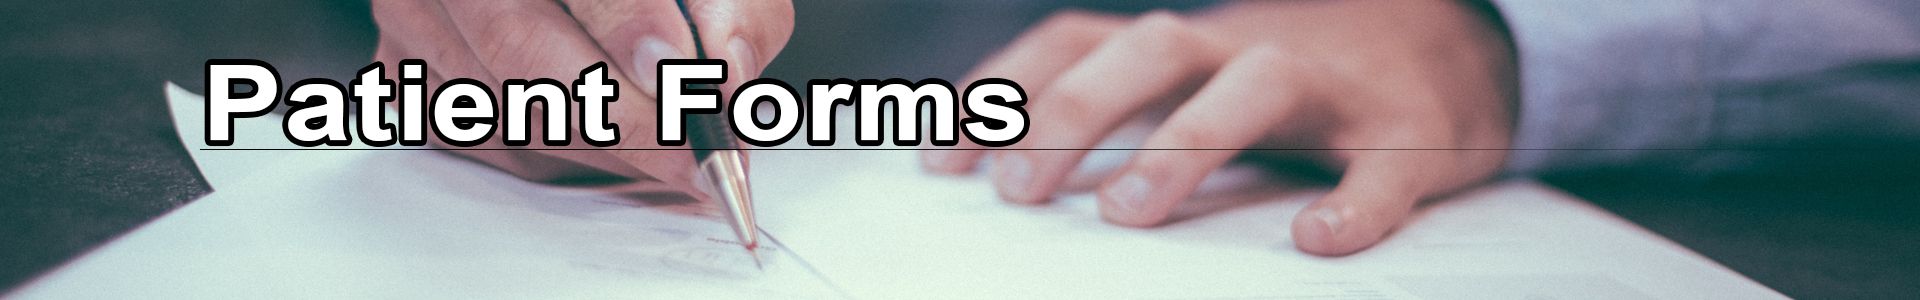 forms_banner